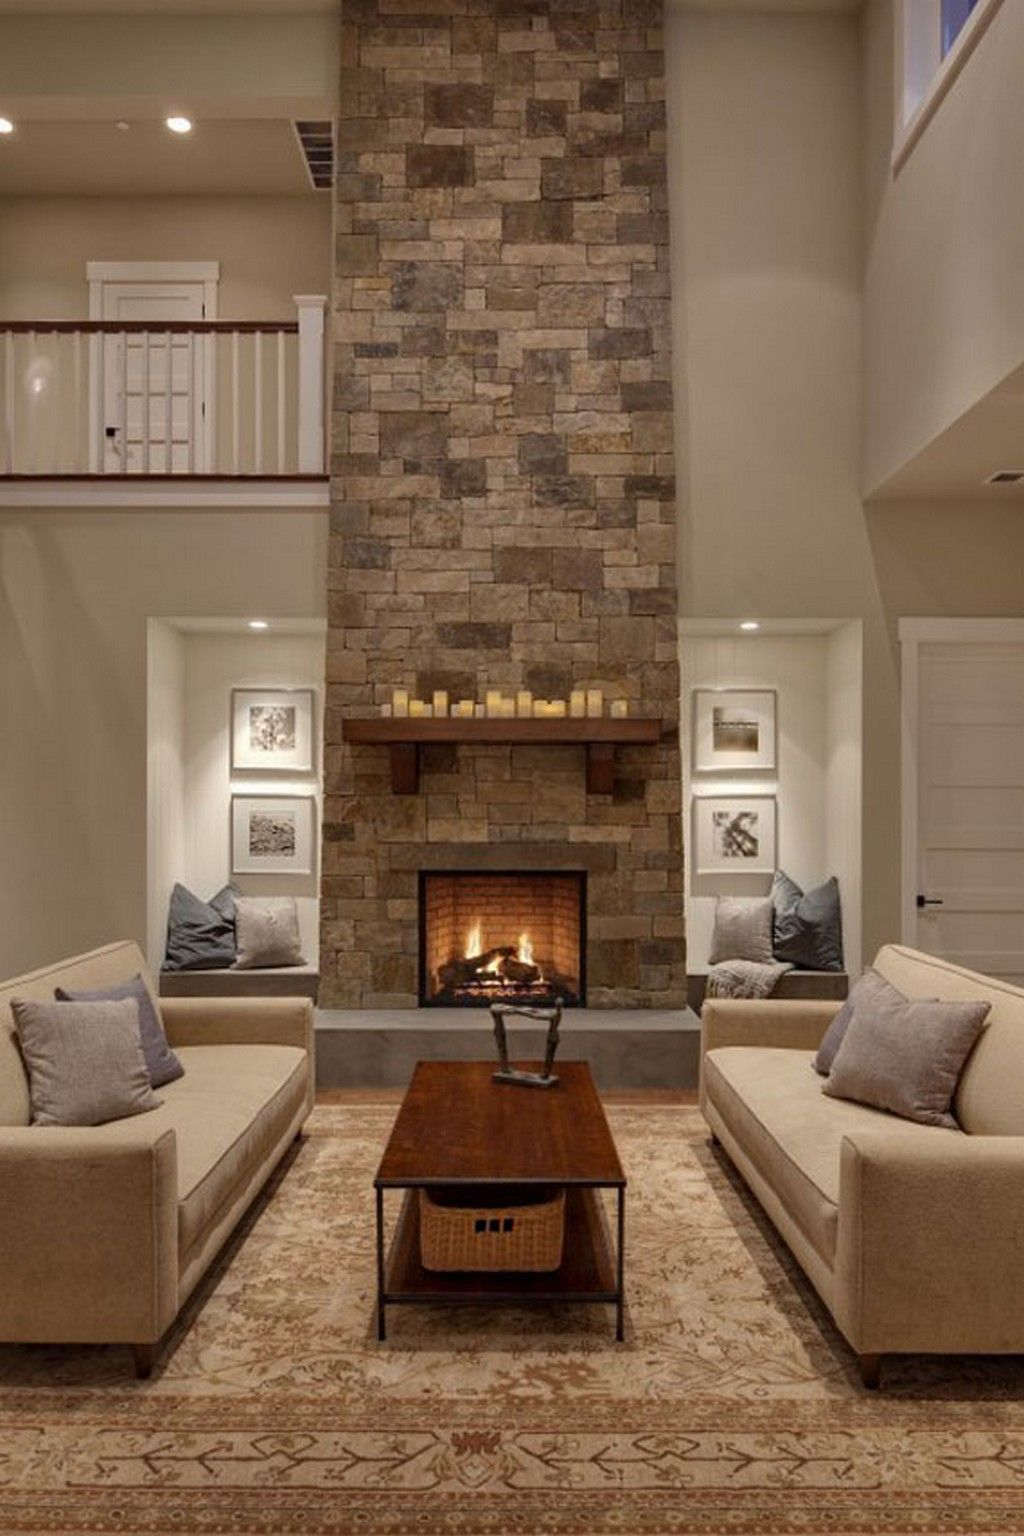 Several Types Of Stone Fireplaces Designs Ideas Transitional Living Room Design Stone Fireplace Designs Home [ 1536 x 1024 Pixel ]